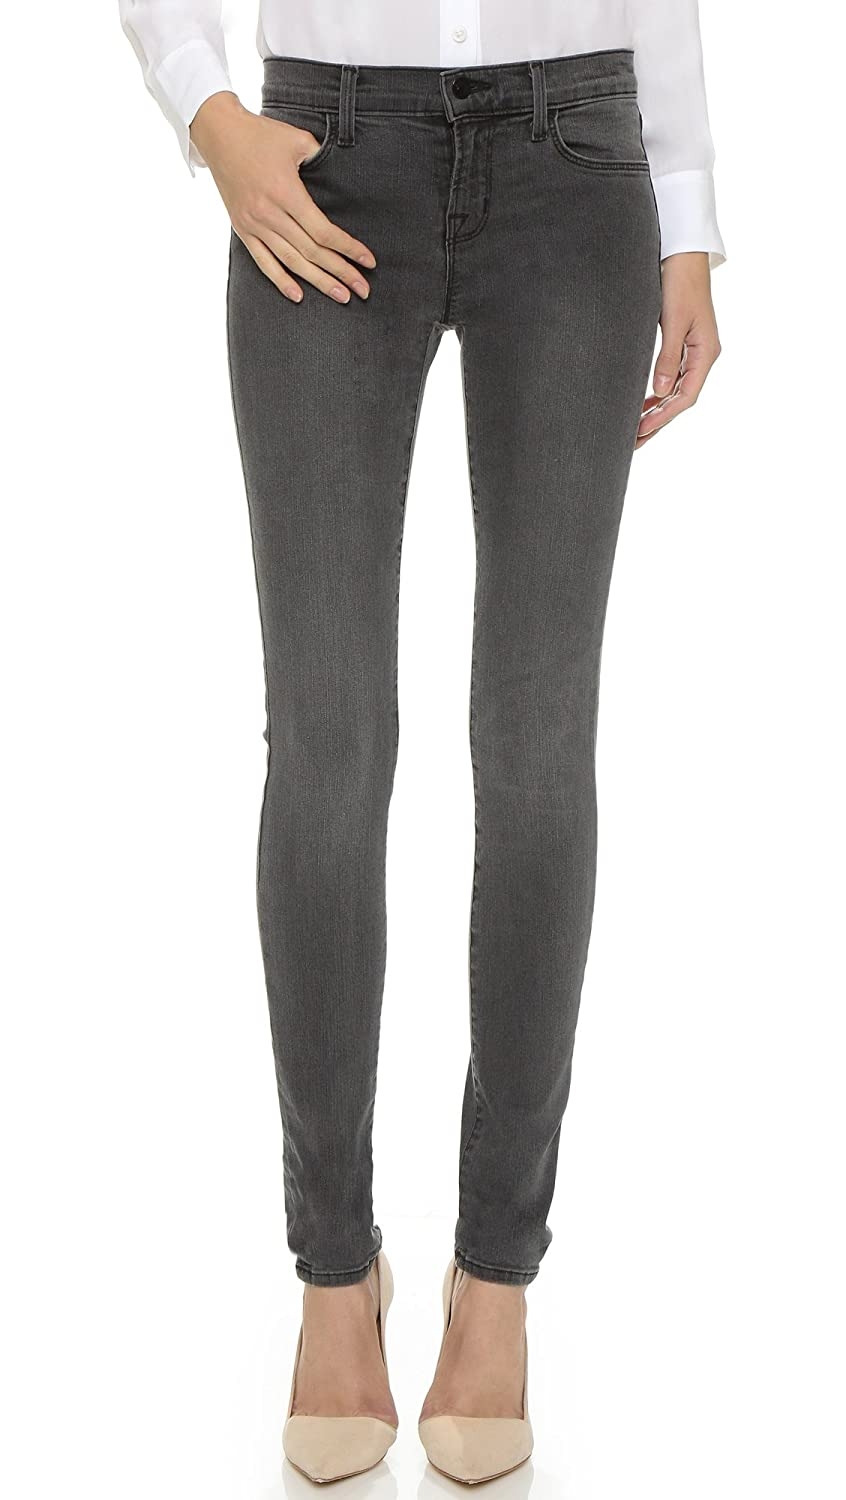 J Brand Women's 620 Photoready Skinny Jeans